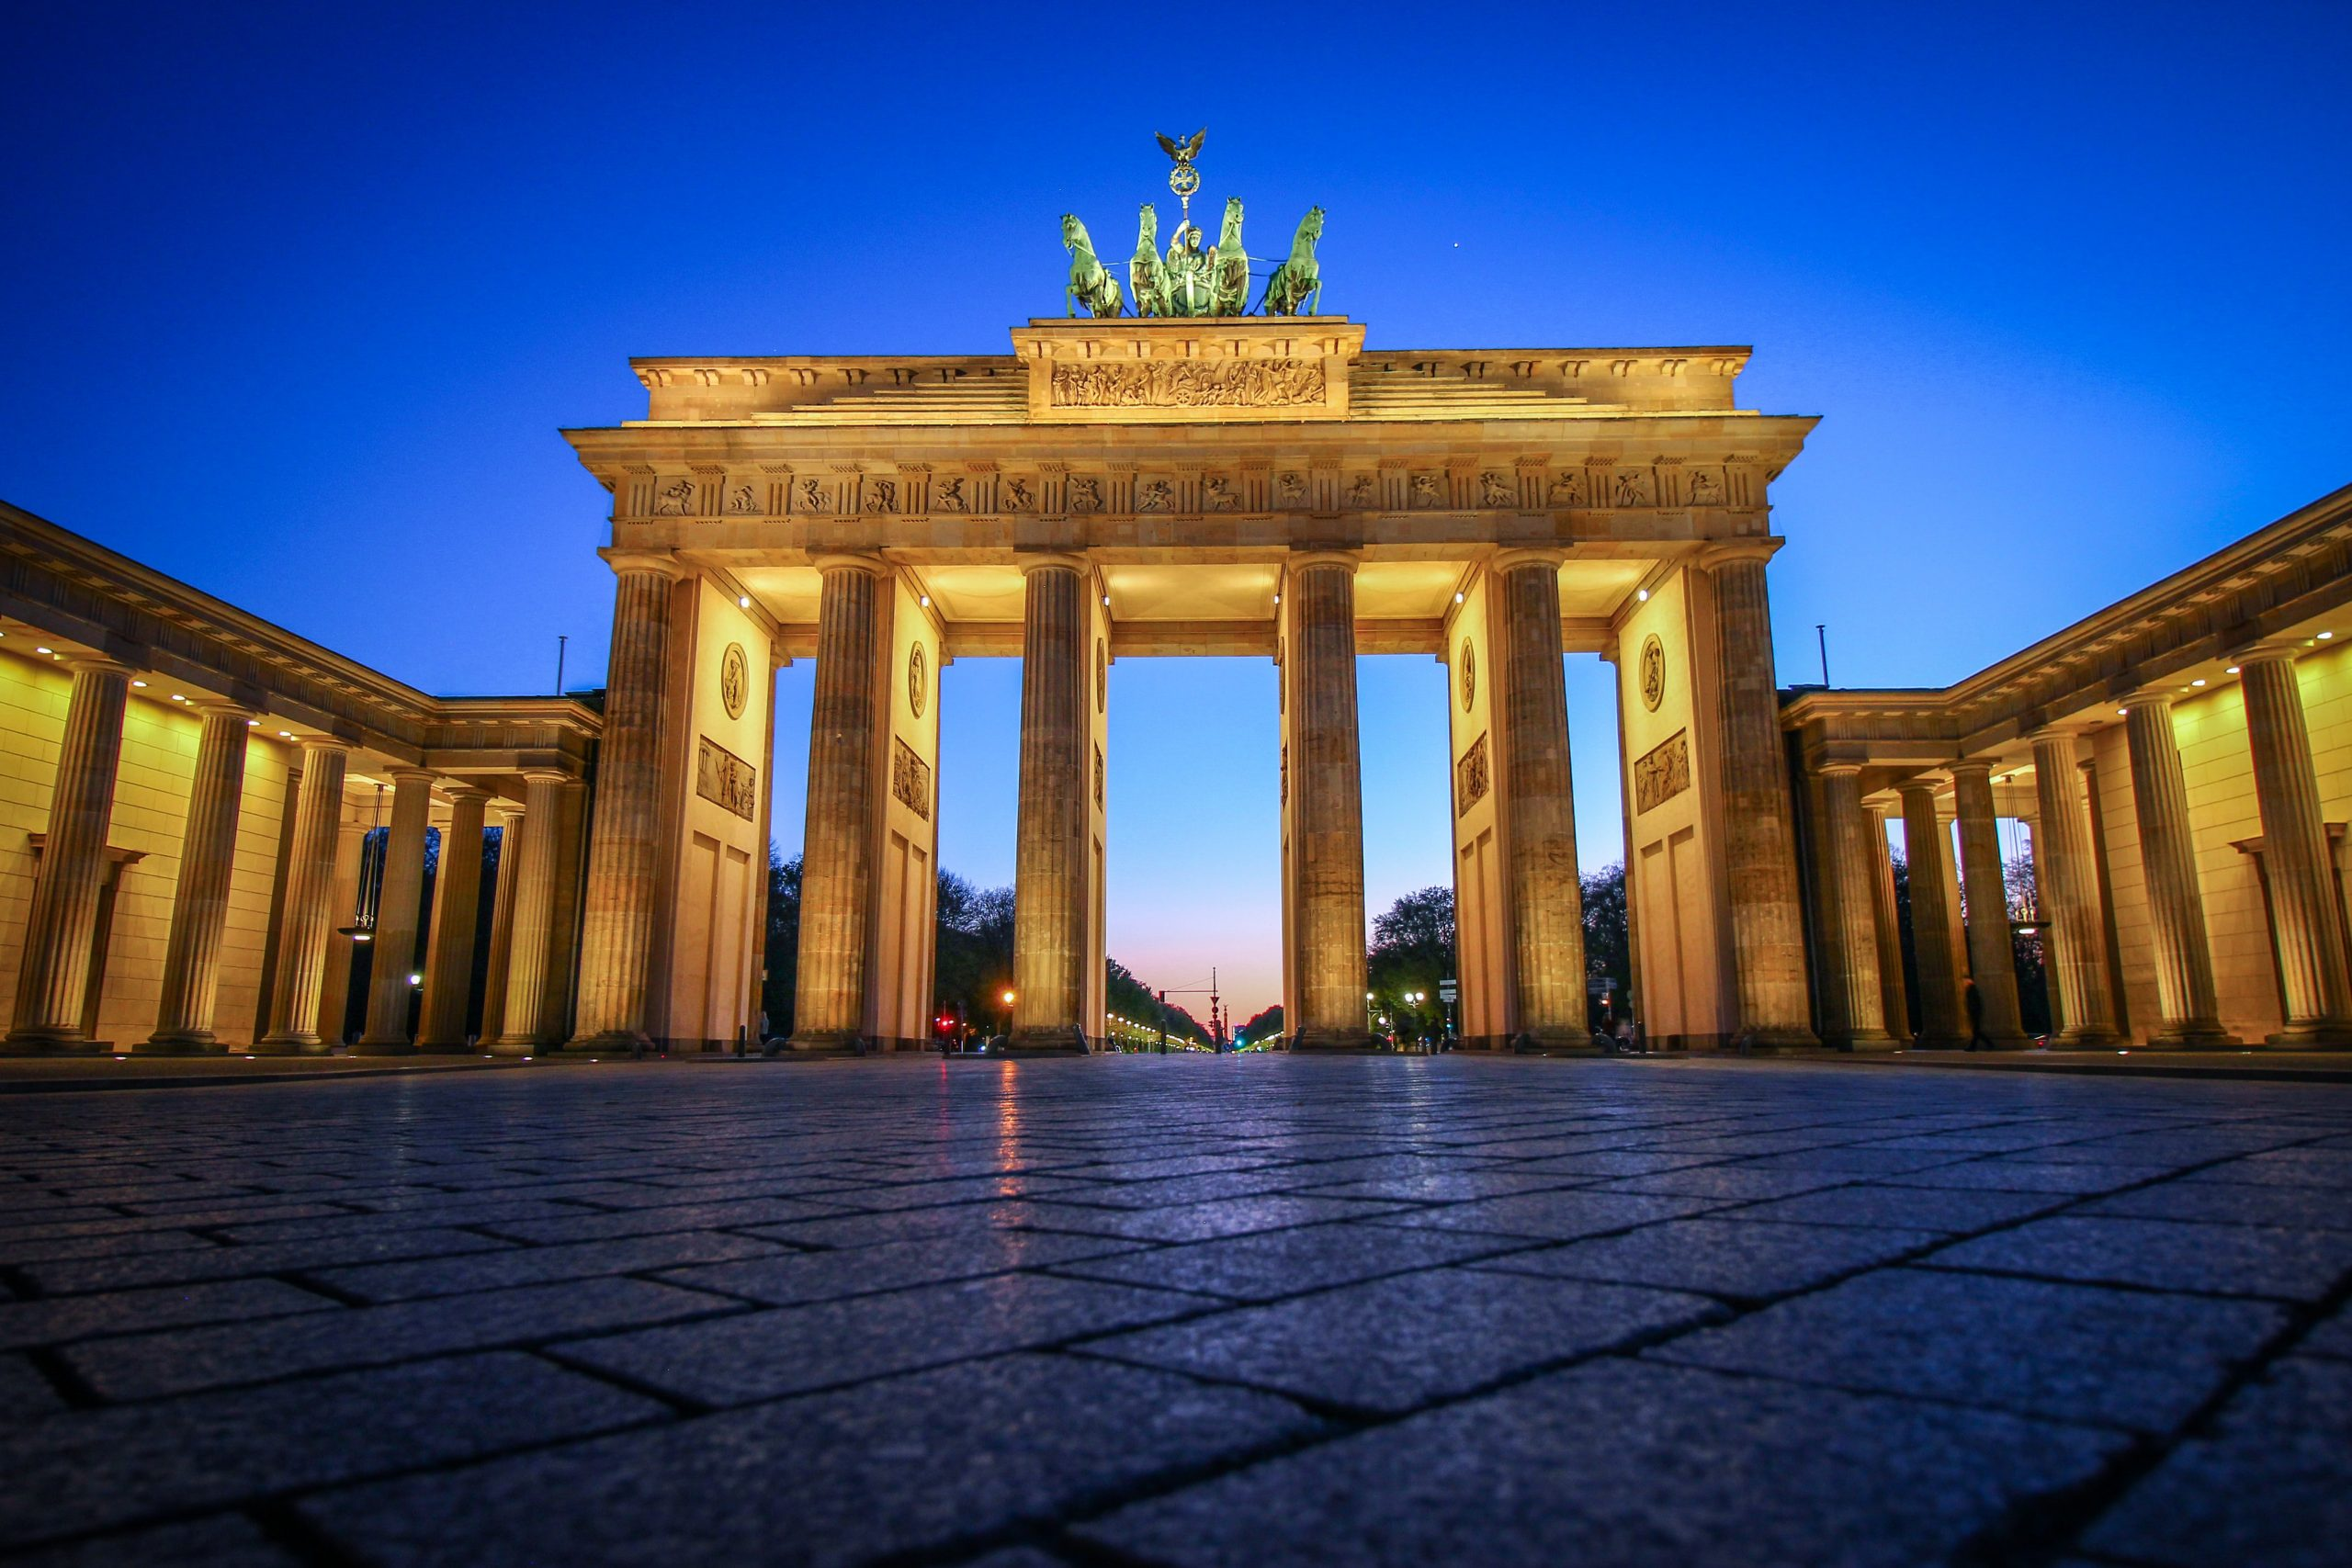 Berlin: 5 Favorite Spots After Living In The City For A Month